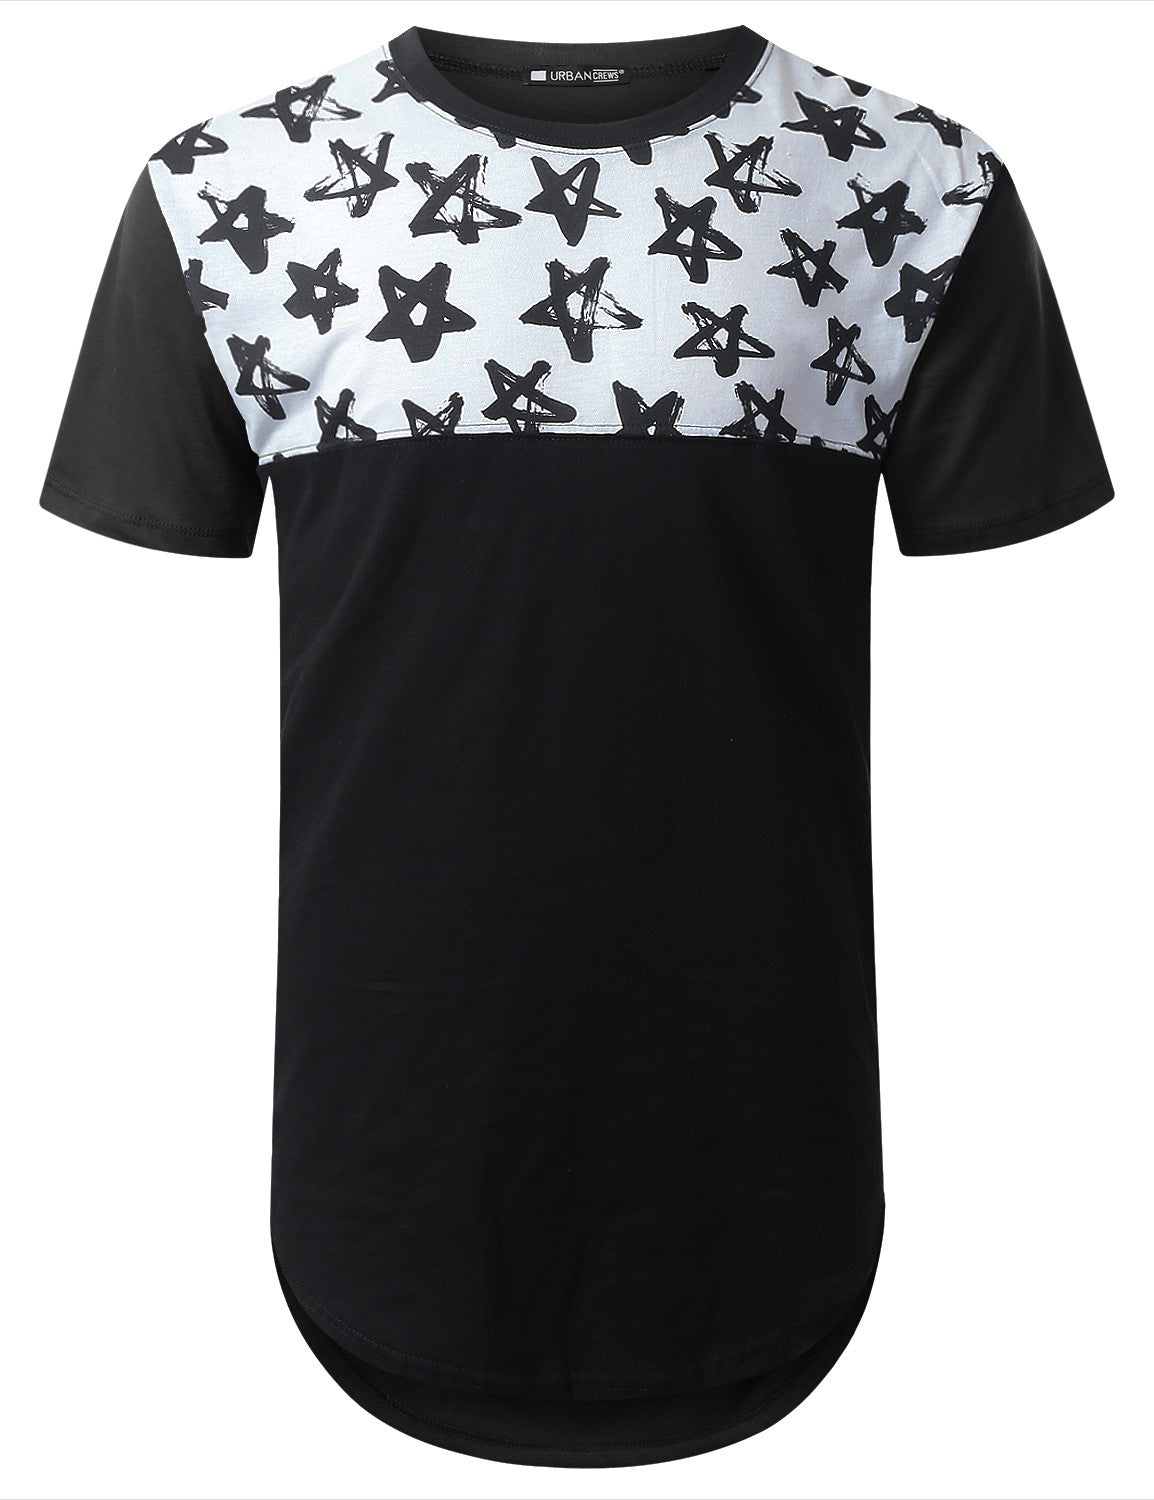 BLACK Star Graphic Panel Longline T-shirt - URBANCREWS